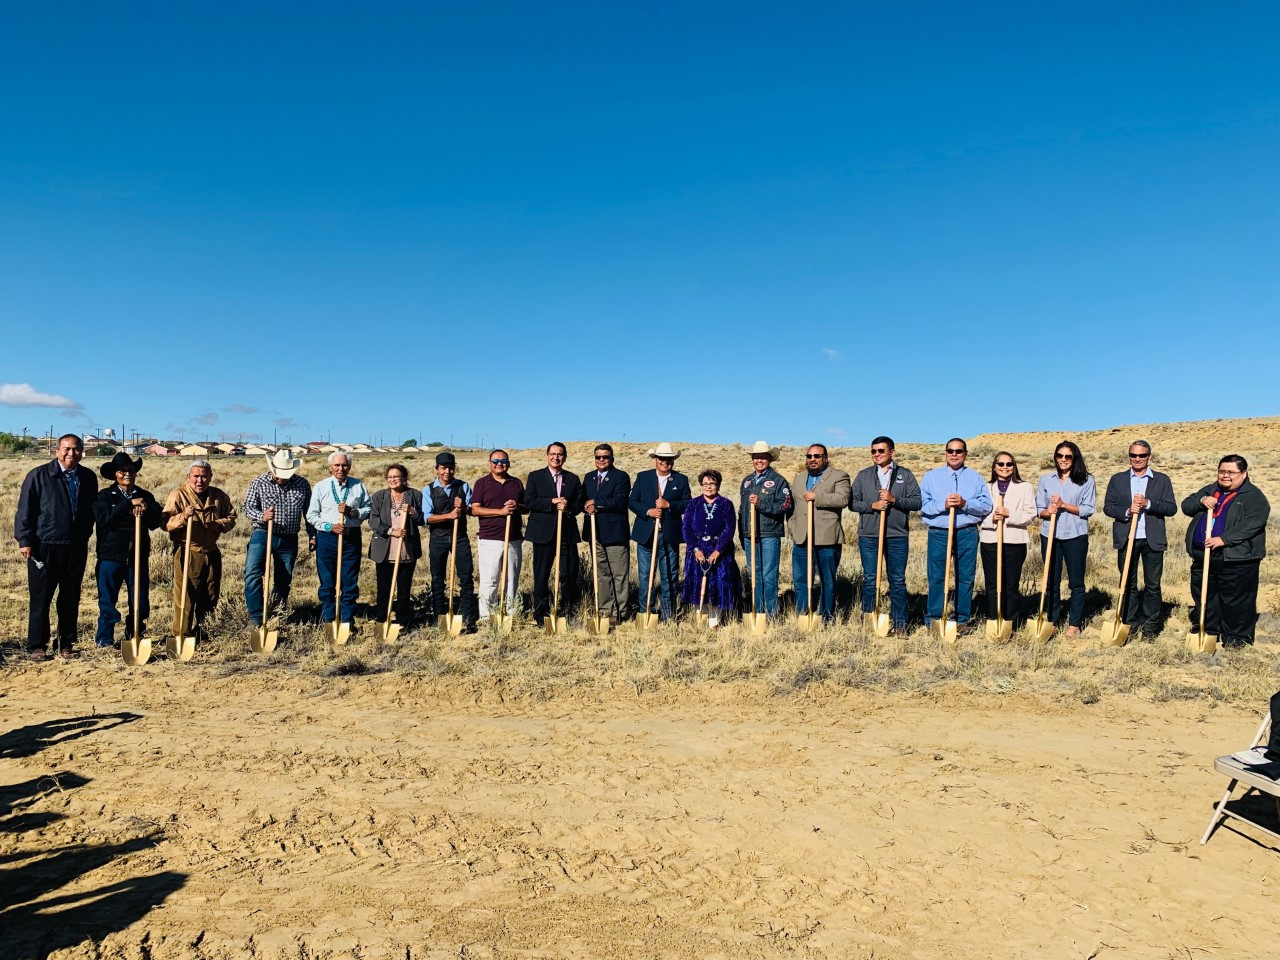 Crownpoint Community Reaches Another Milestone with the Groundbreaking of the New Hotel and Conference Center